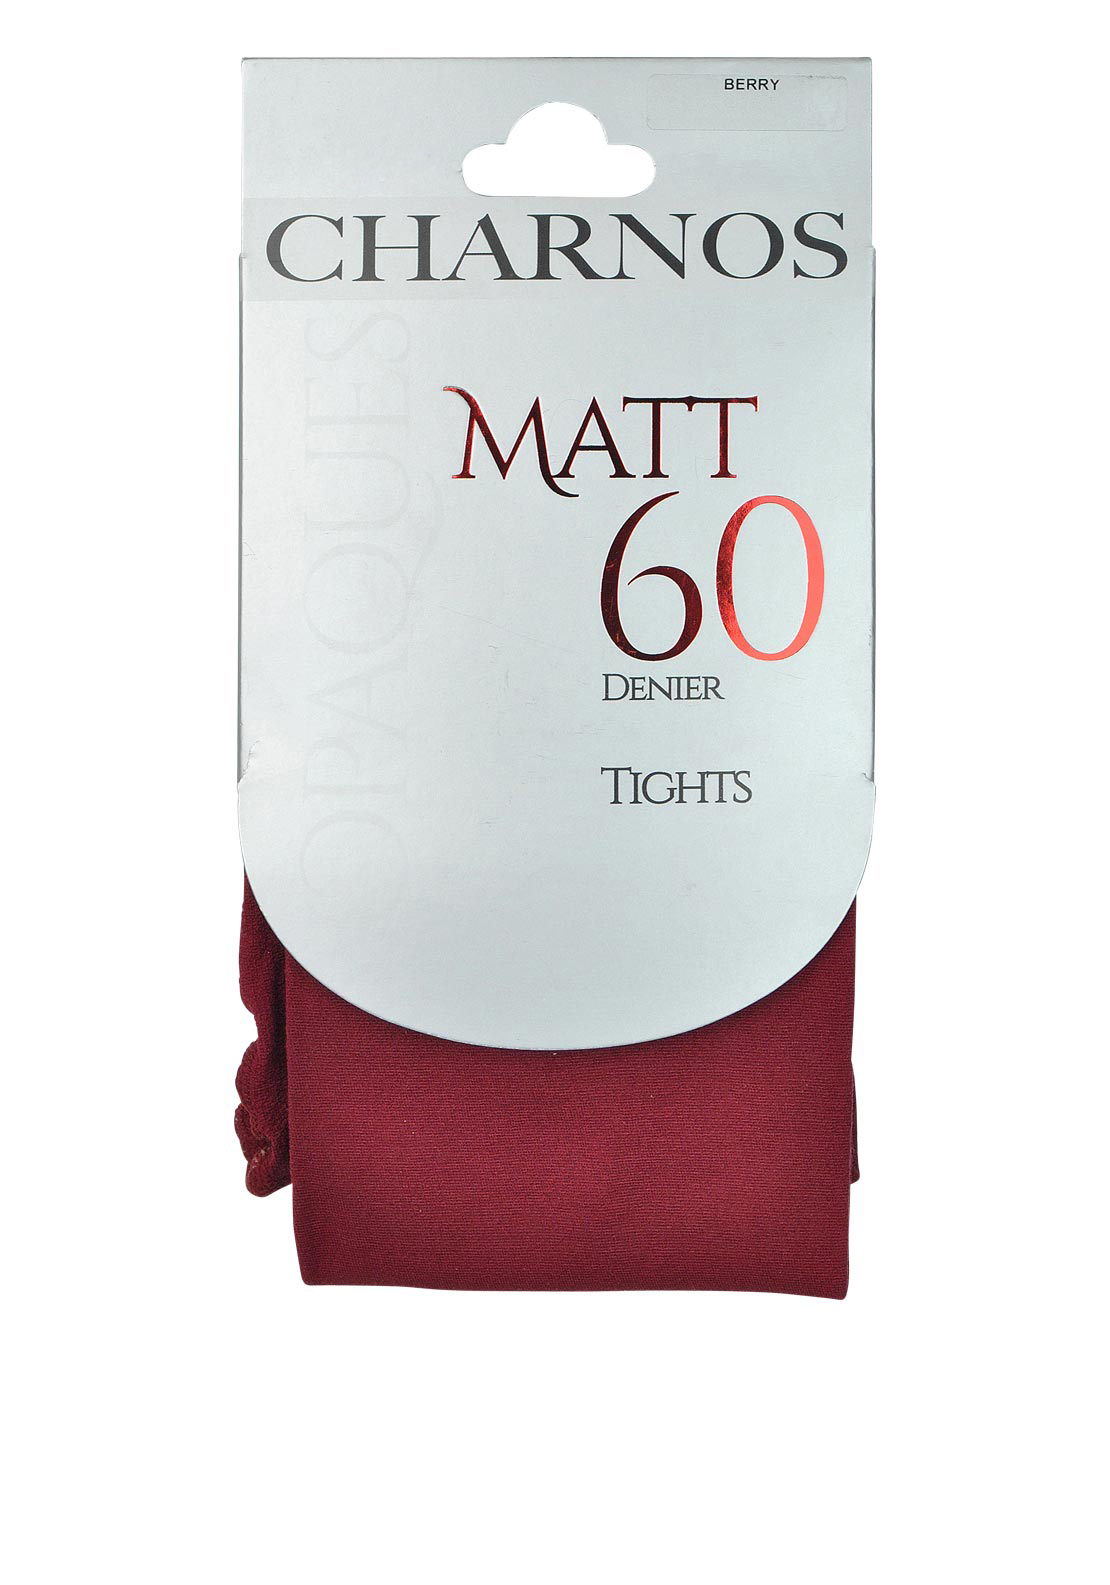 Charnos Opaques Matt 60 Denier Tights, Berry